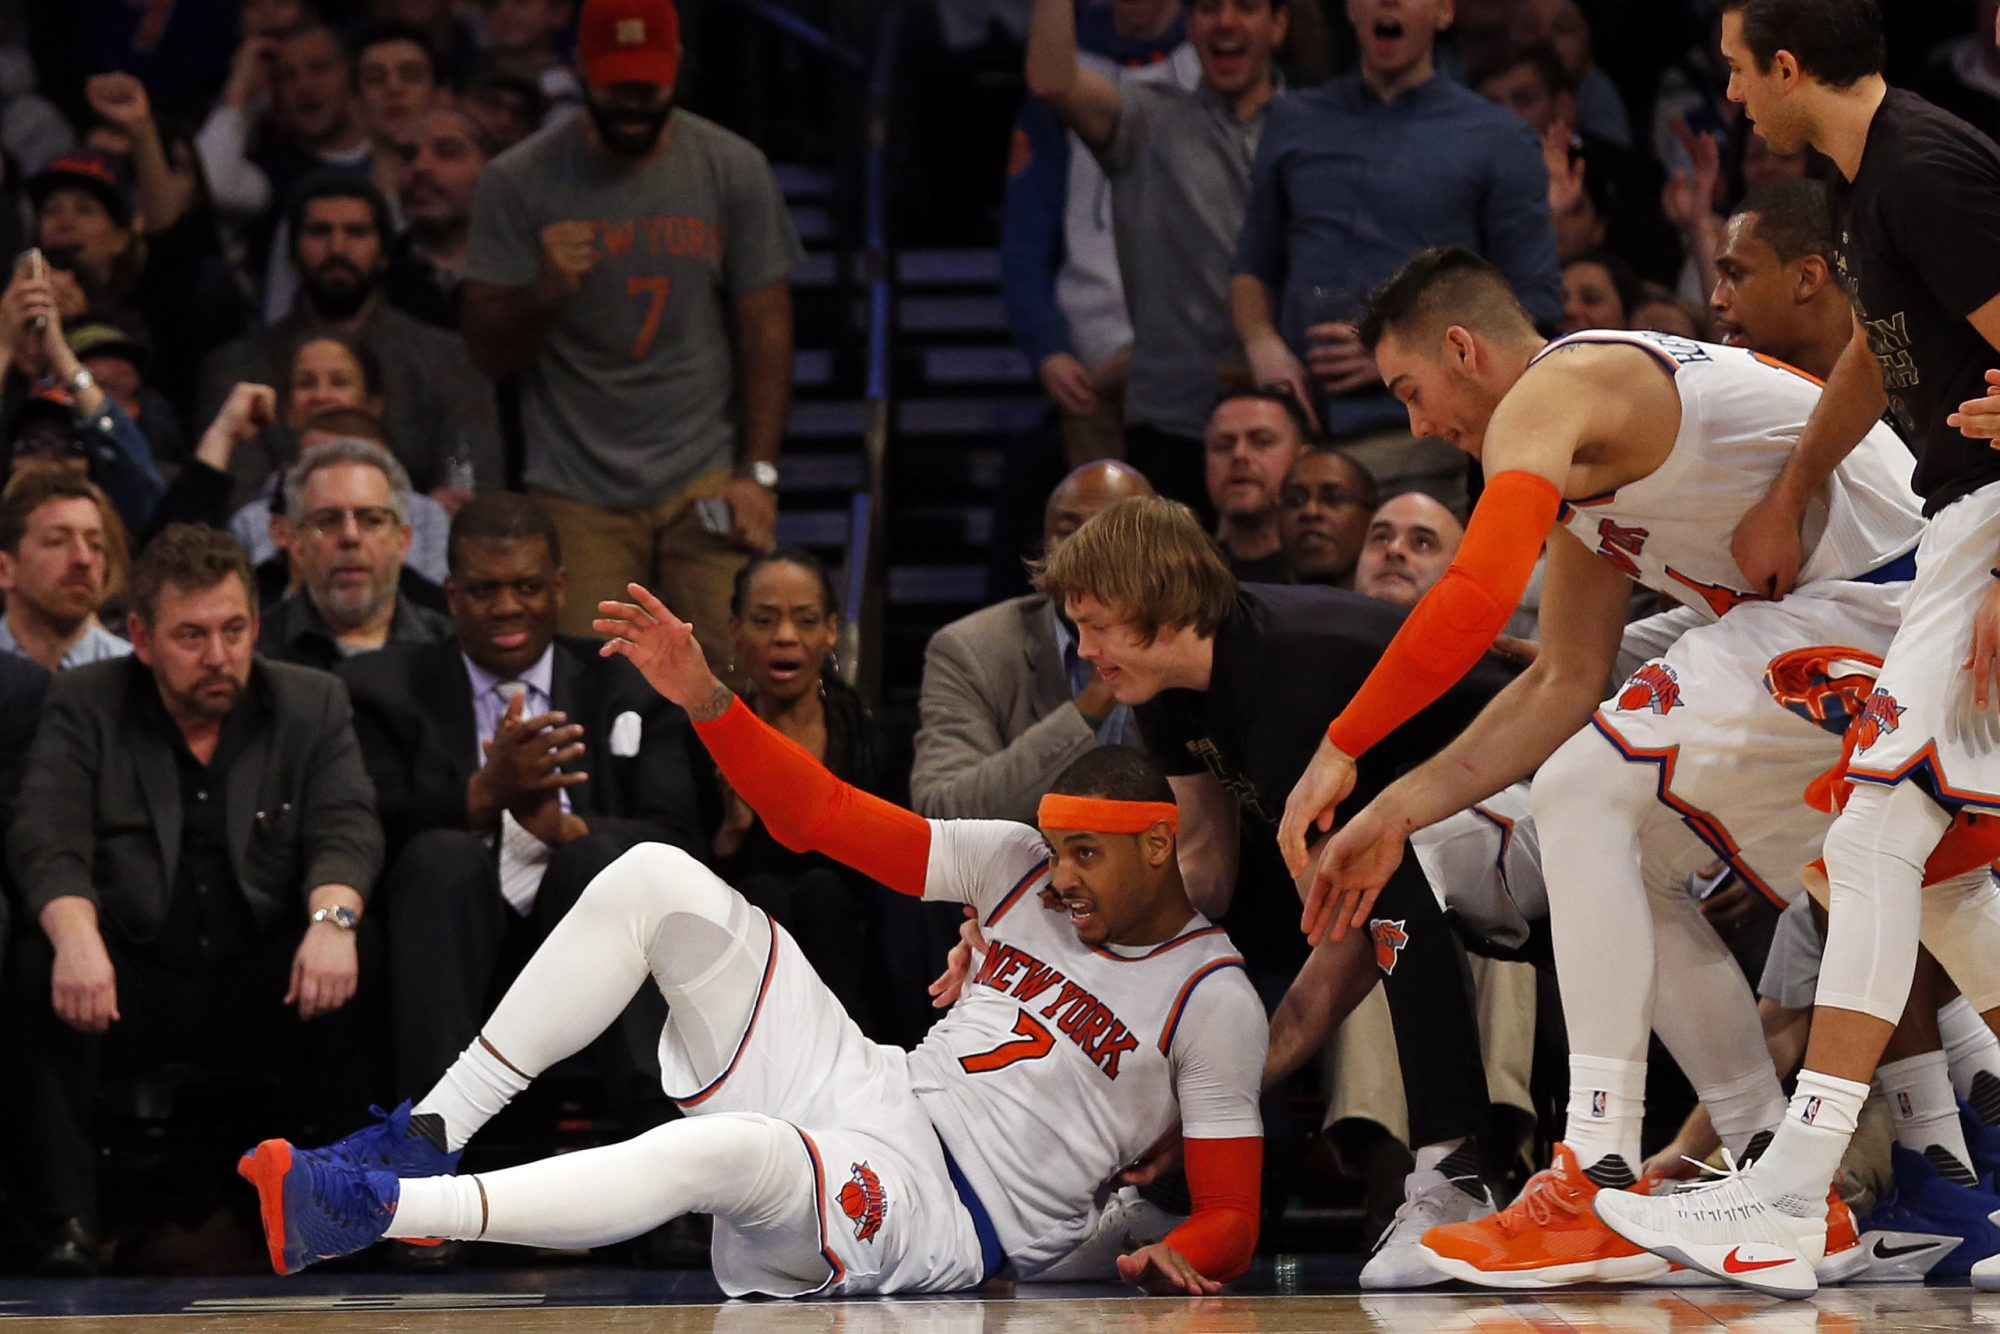 The New York Knicks Awkward Position: Stuck in Playoff Push and Rebuilding 2